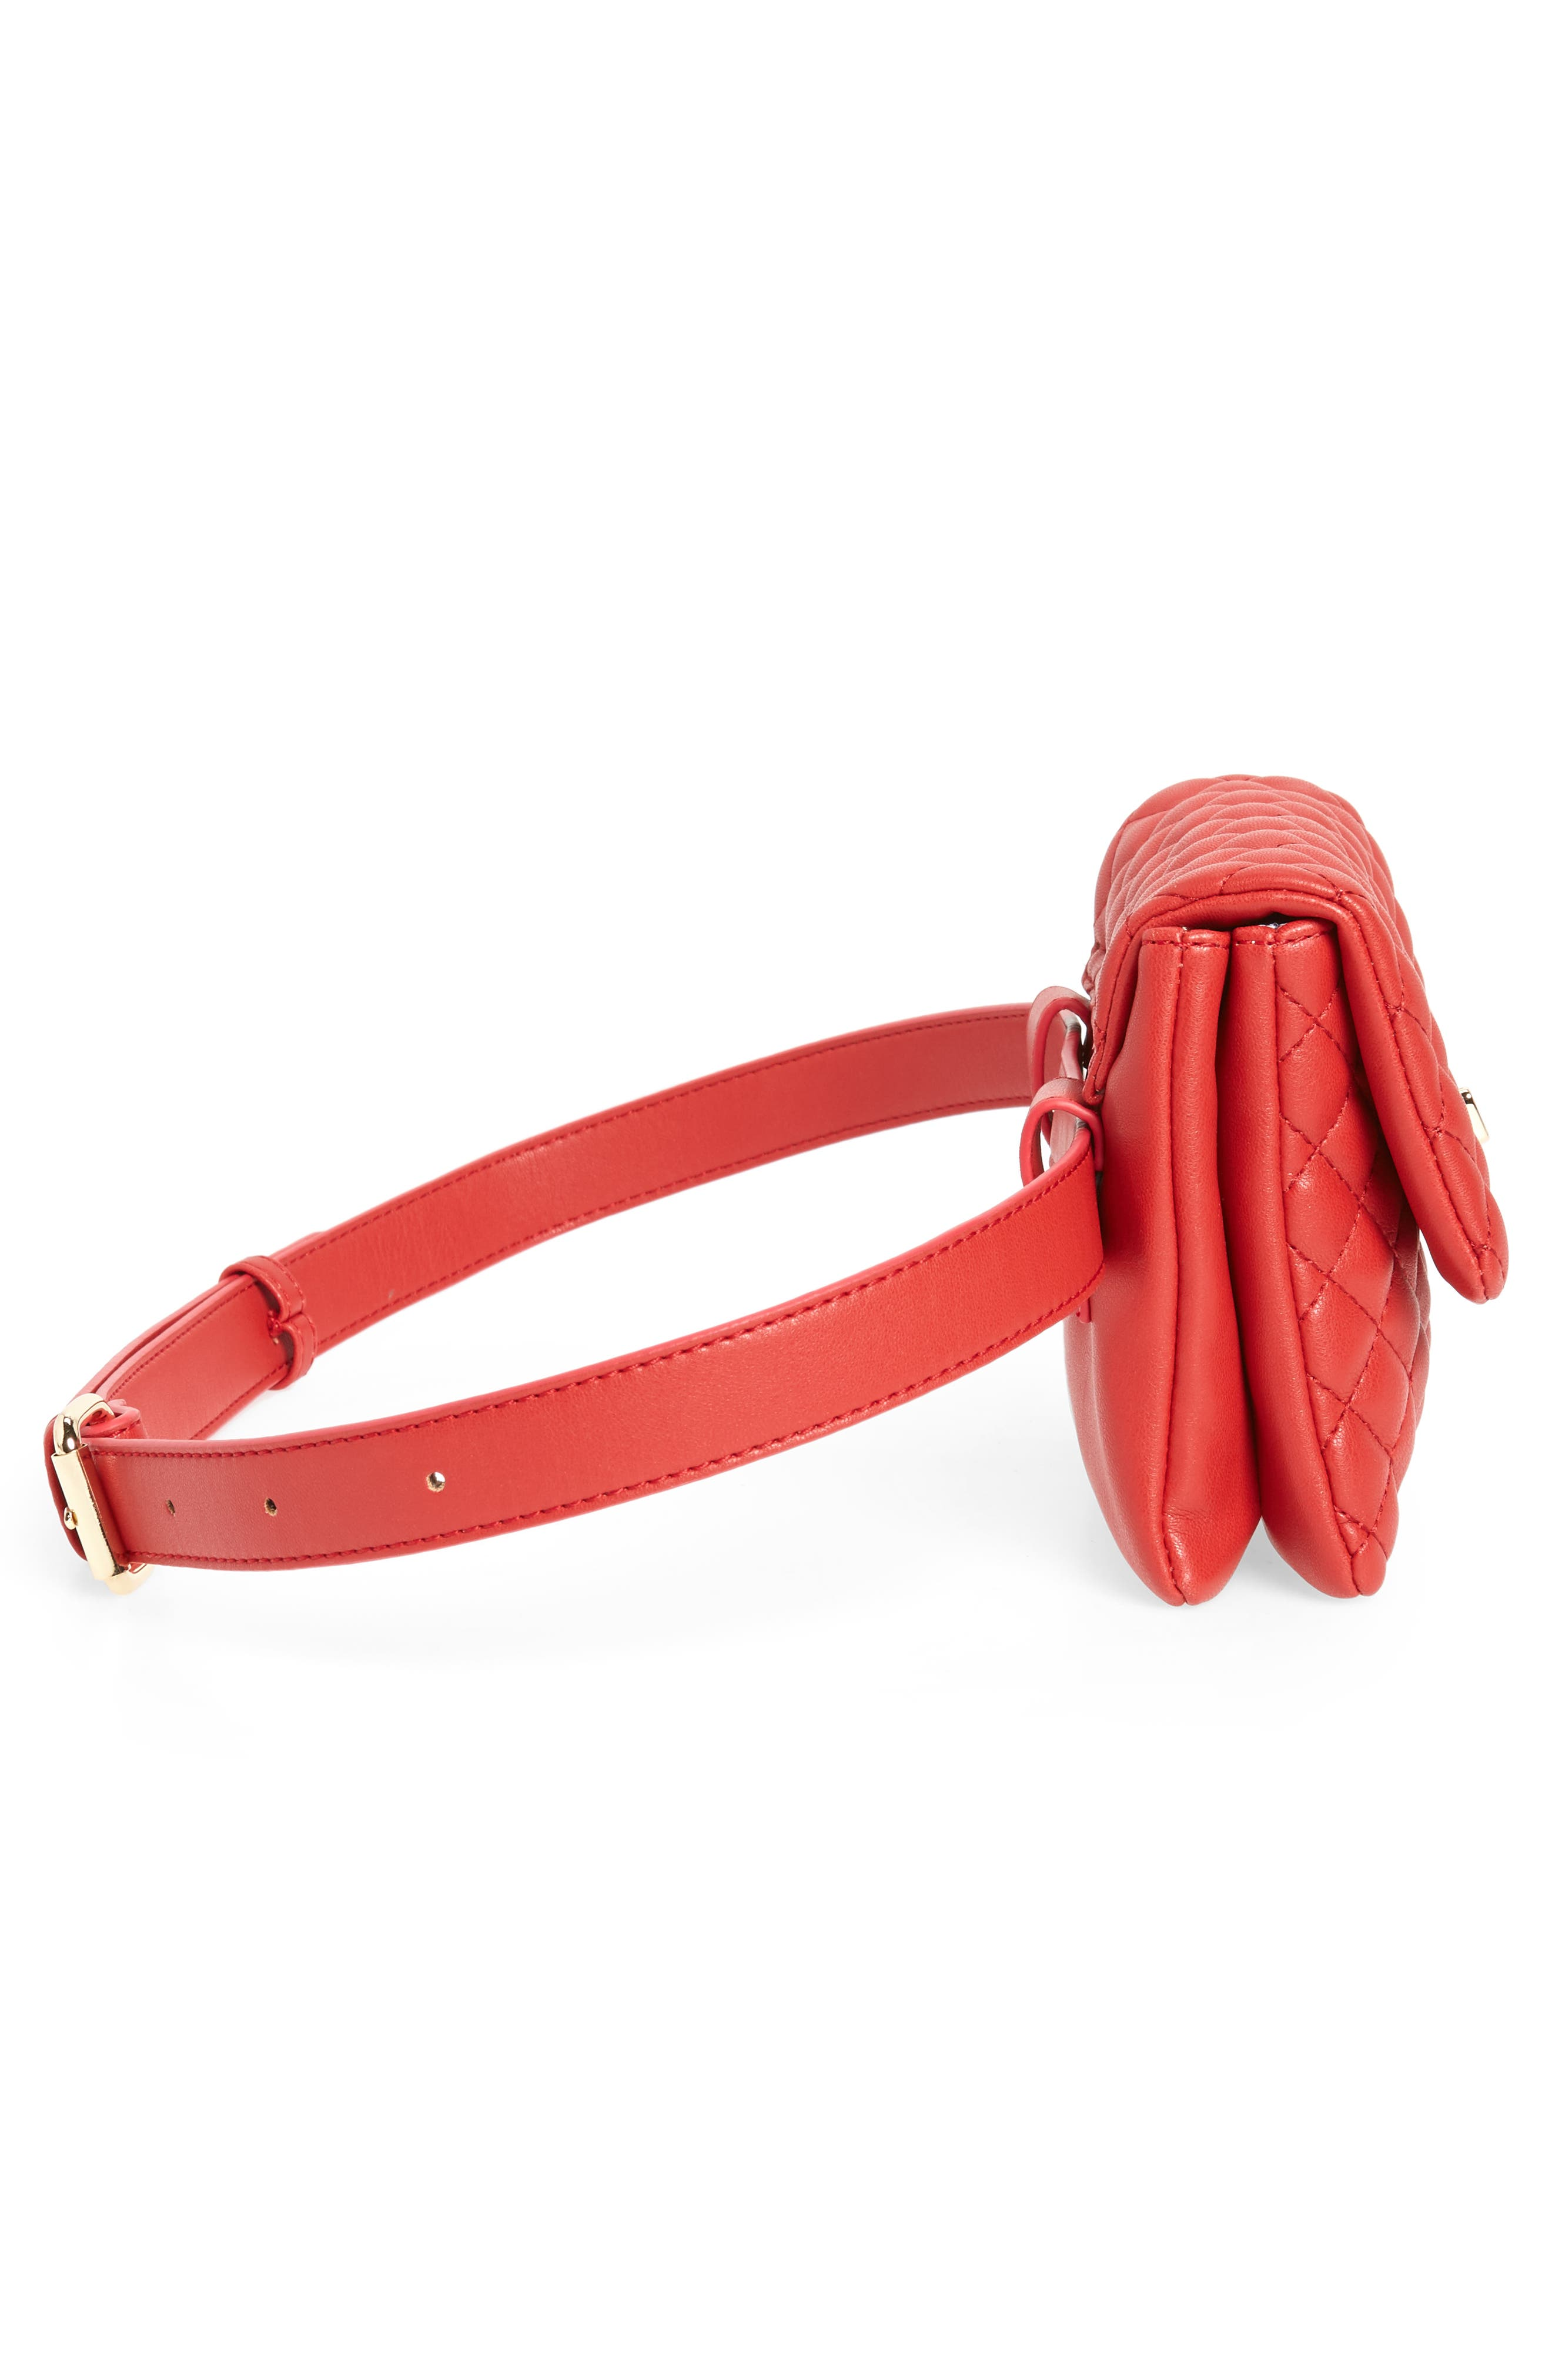 Mali + Lili Quilted Vegan Leather Convertible Belt Bag,                             Alternate thumbnail 8, color,                             Red